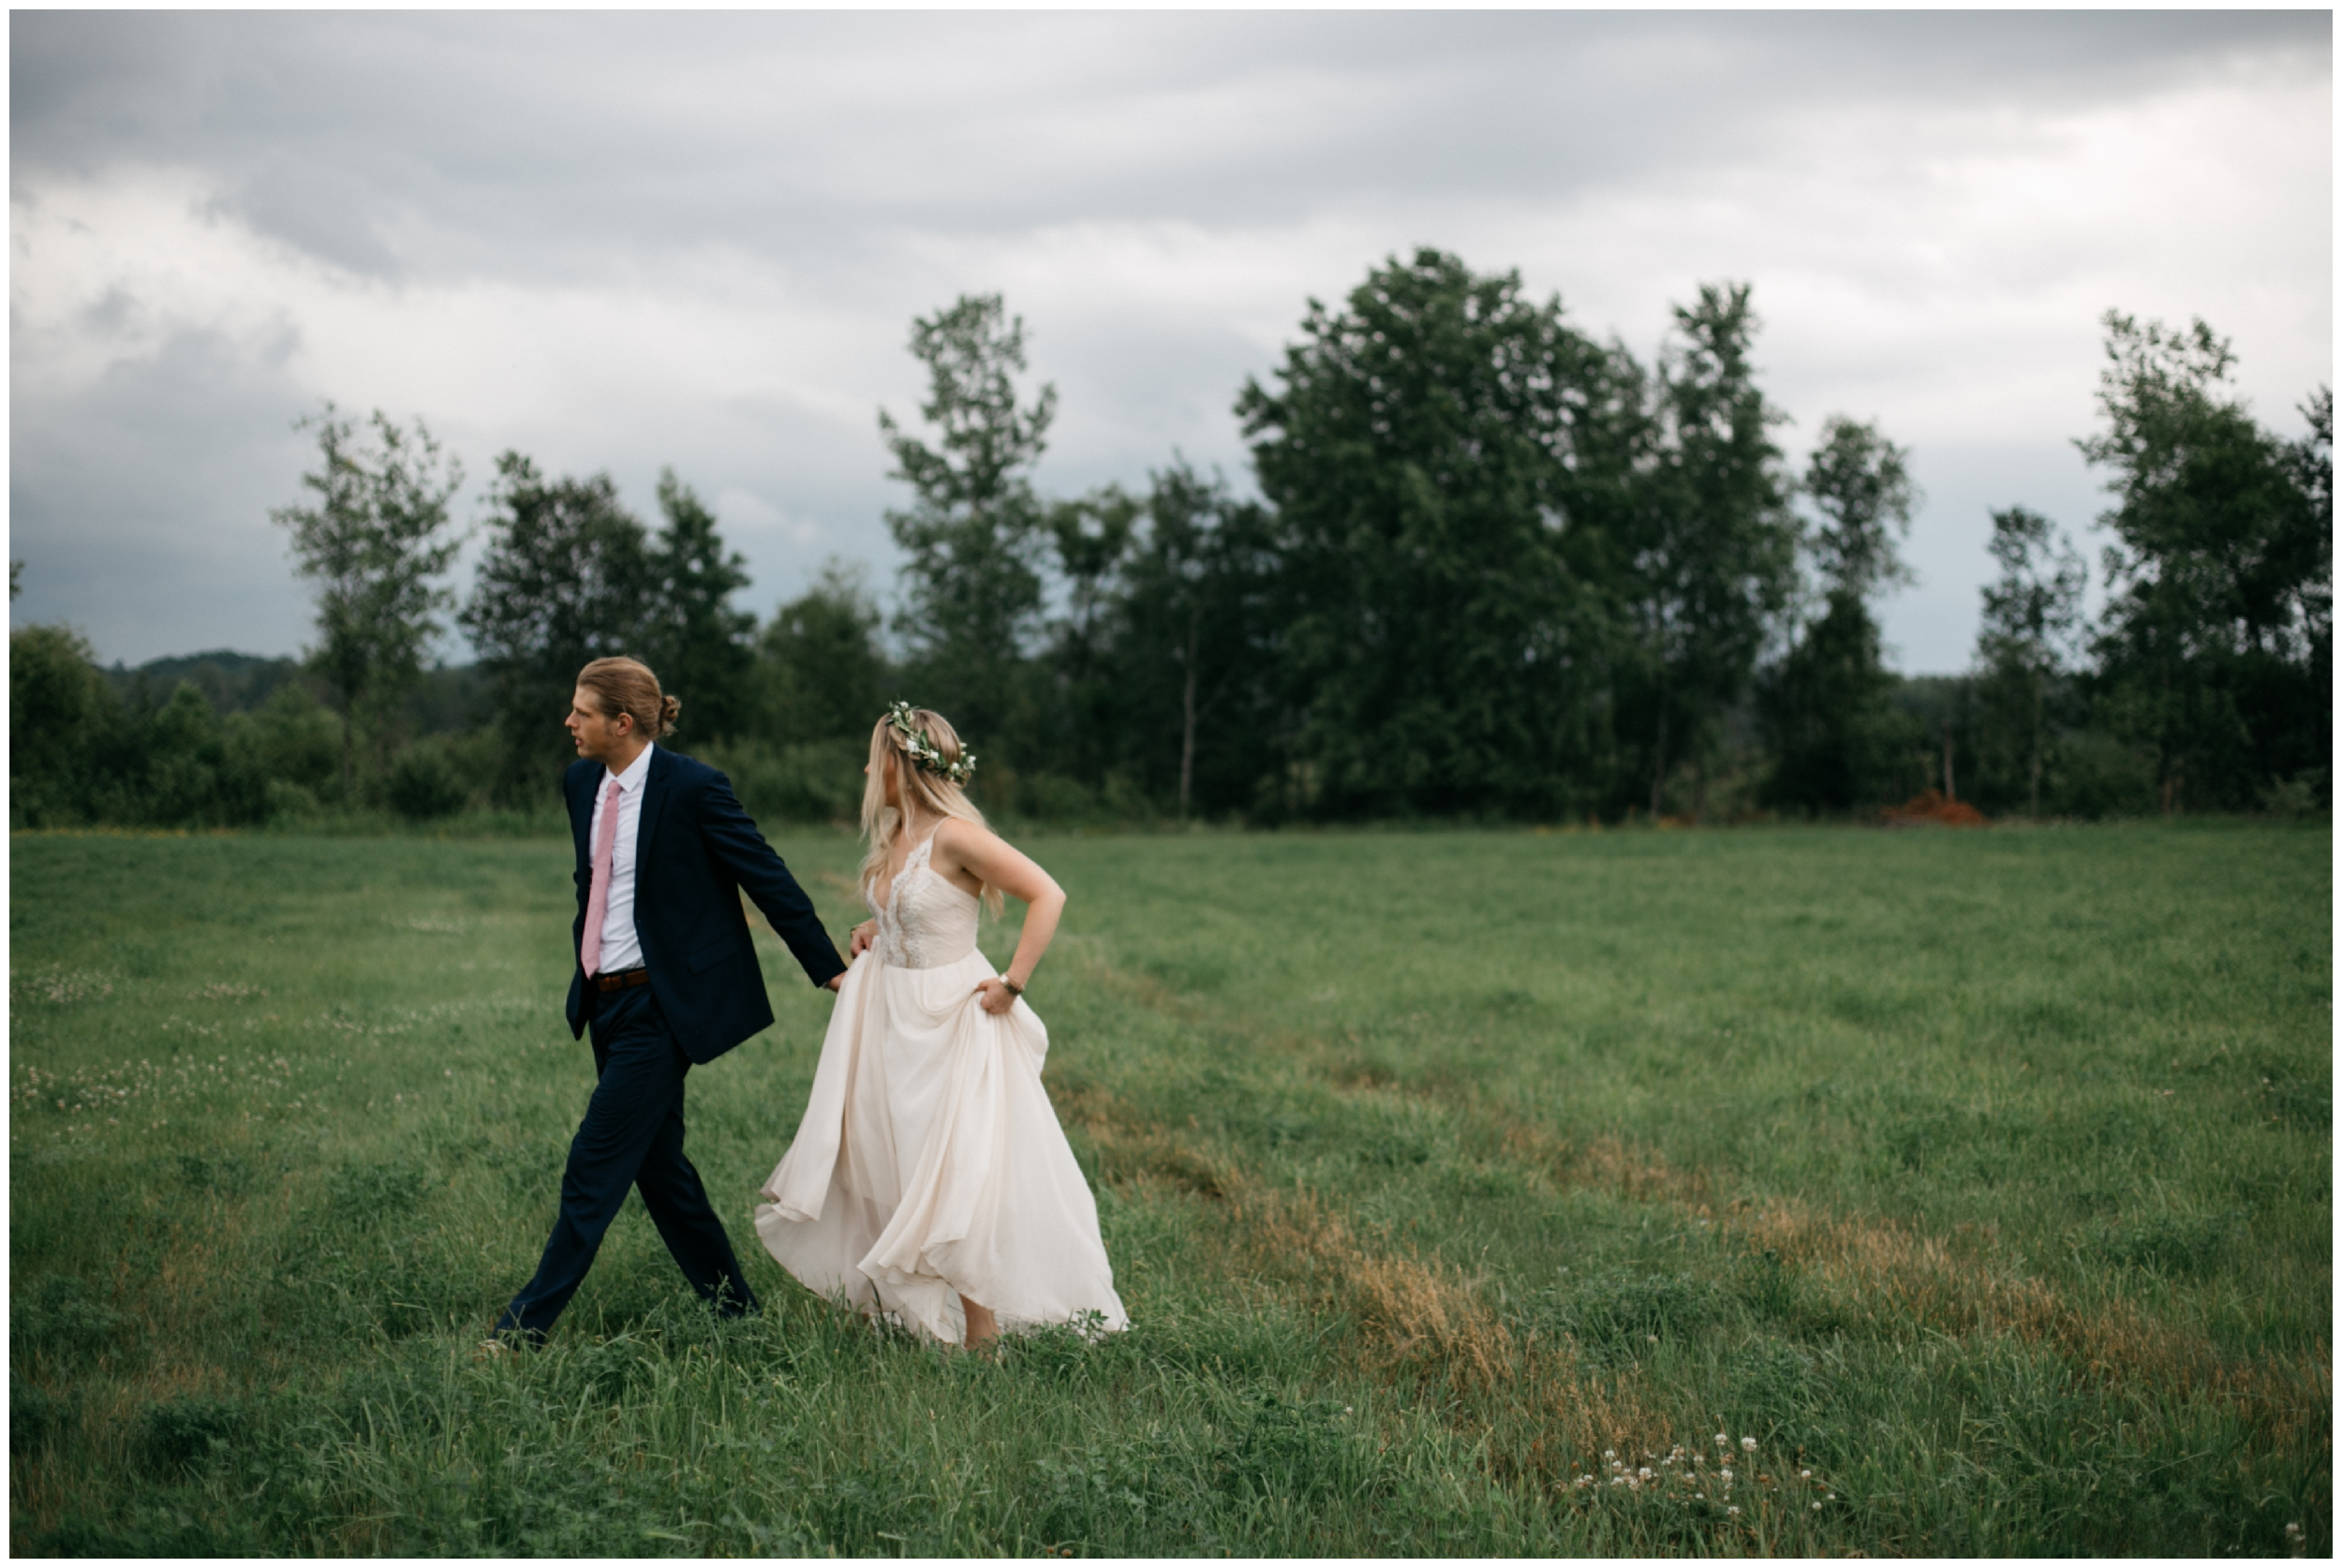 Midsummer's night dream inspired wedding at the NP Event Space